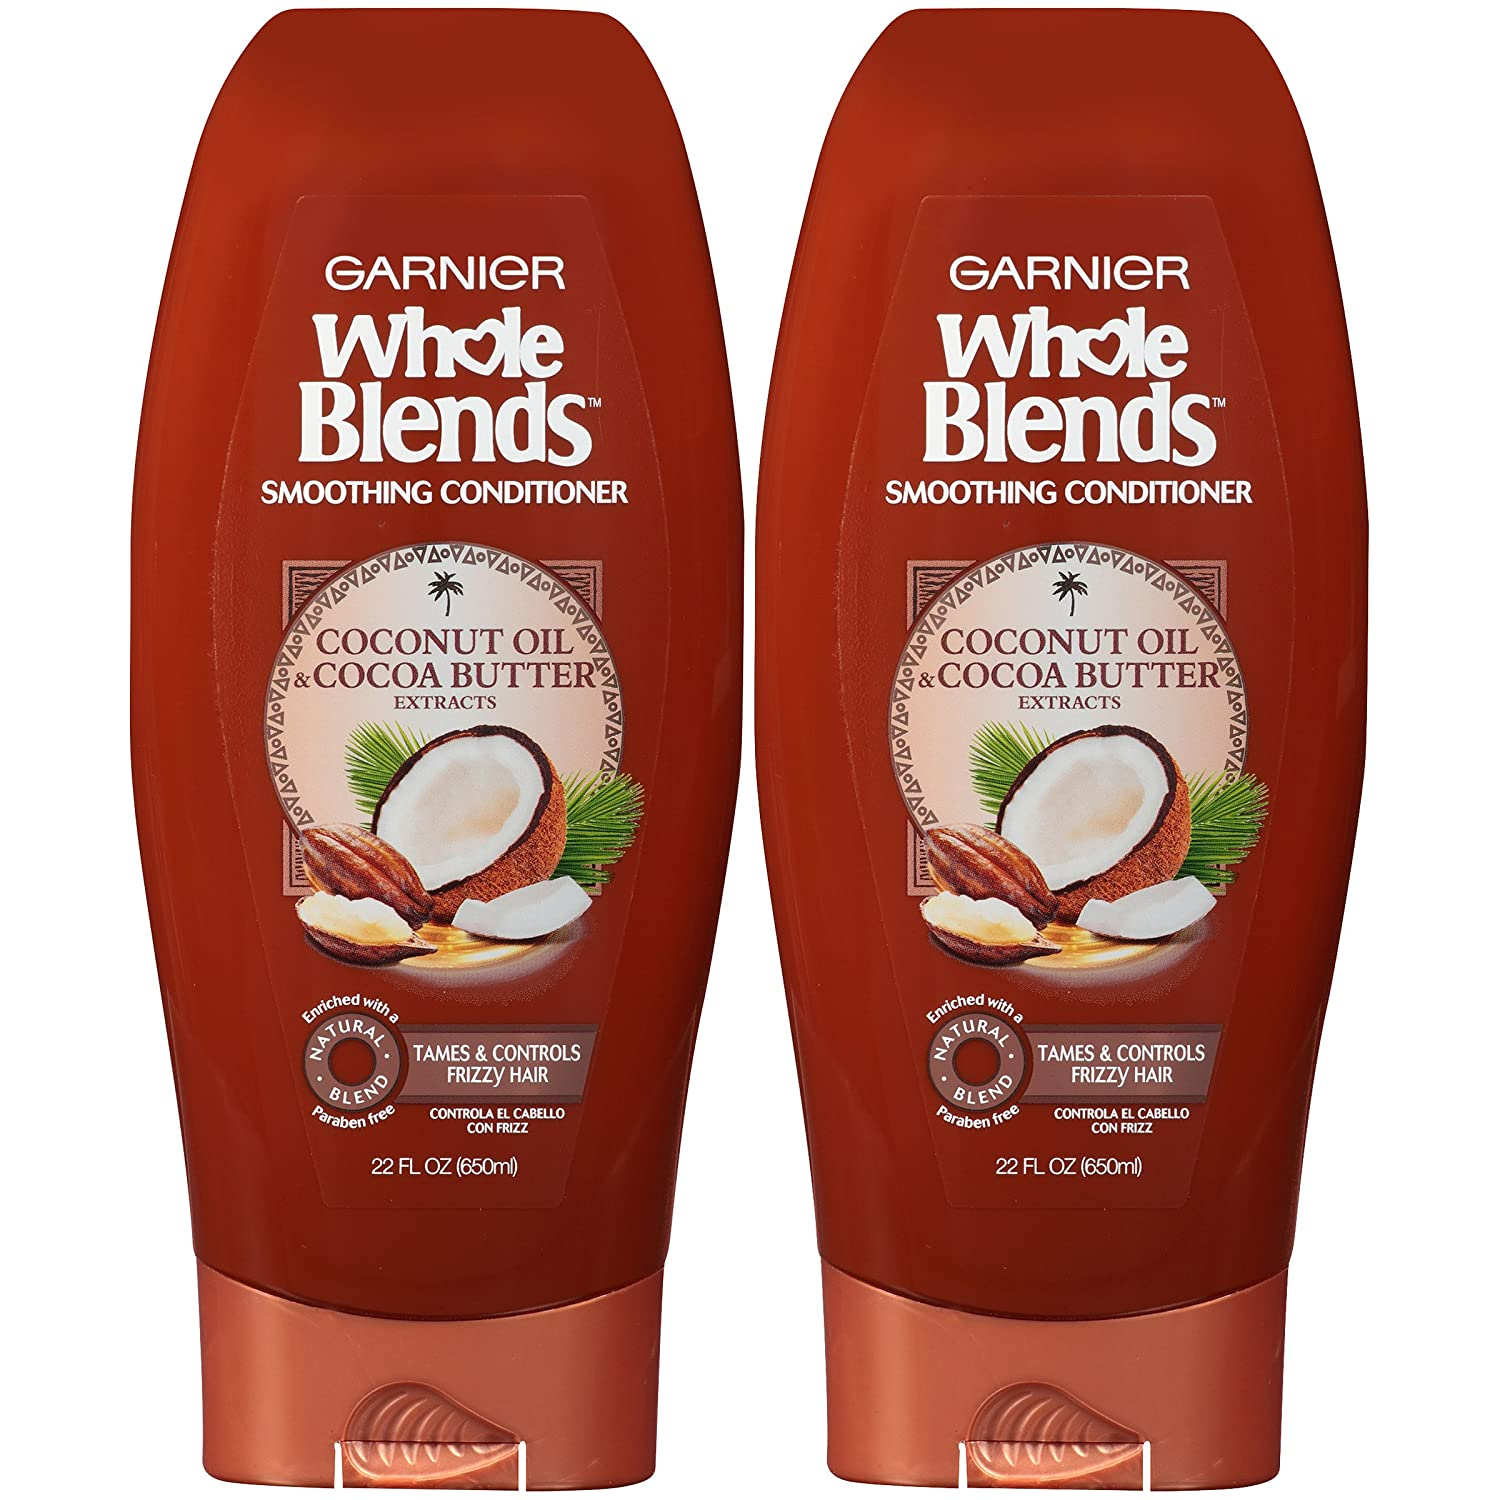 Garnier Whole Blends Smoothing Conditioner for Frizzy HAir with Coconut Oil, 22 Ounce Bottle, 2 Count